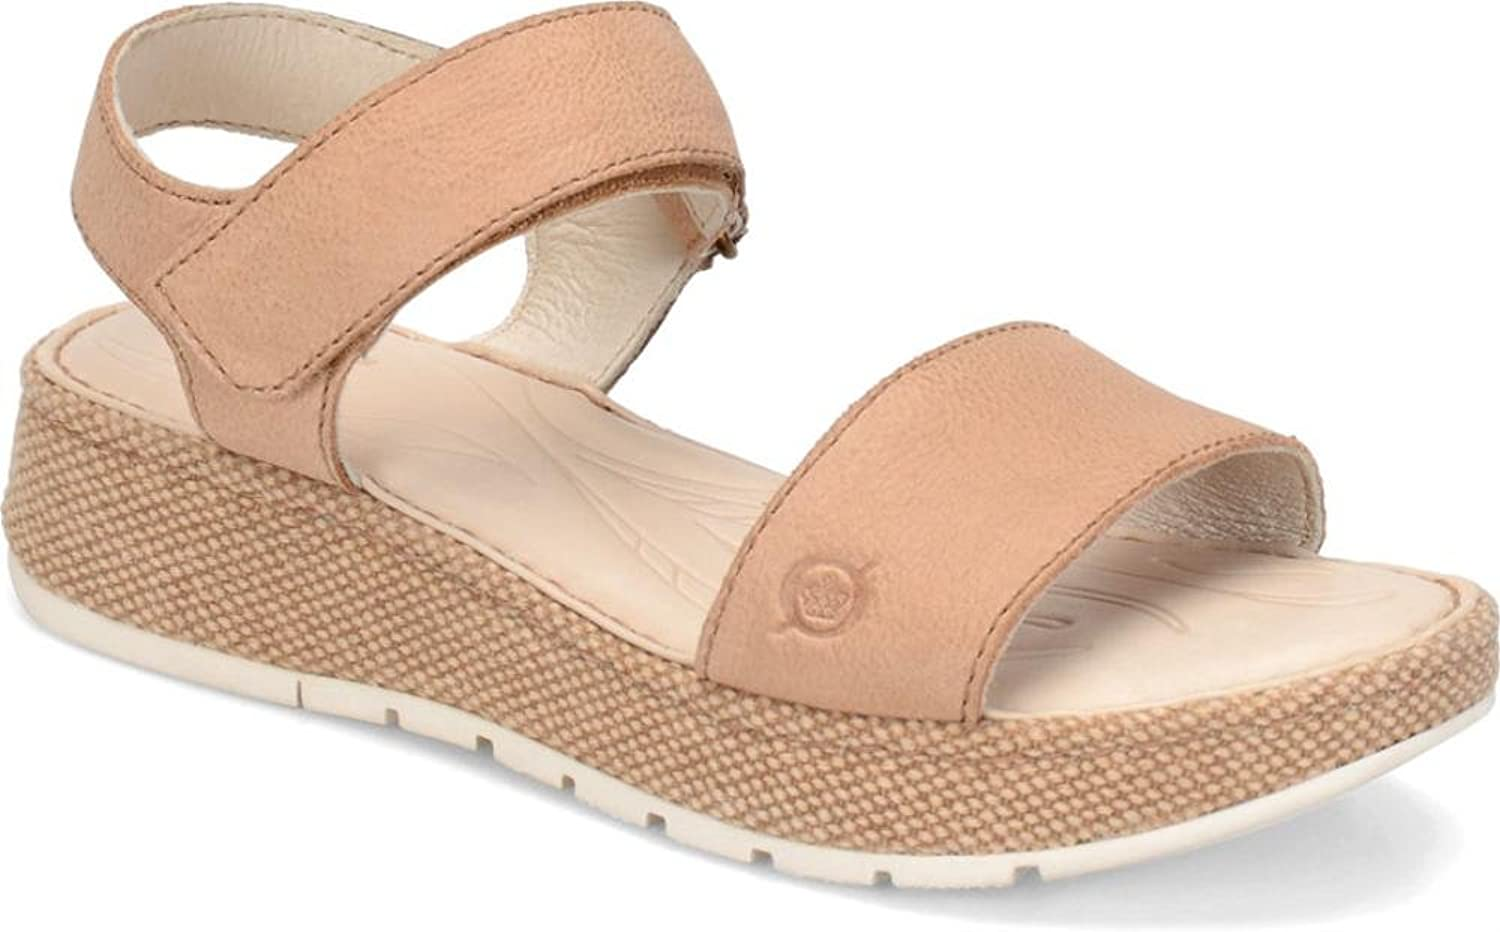 Born Petula Sandals - Nubuck (For Women) 34447729